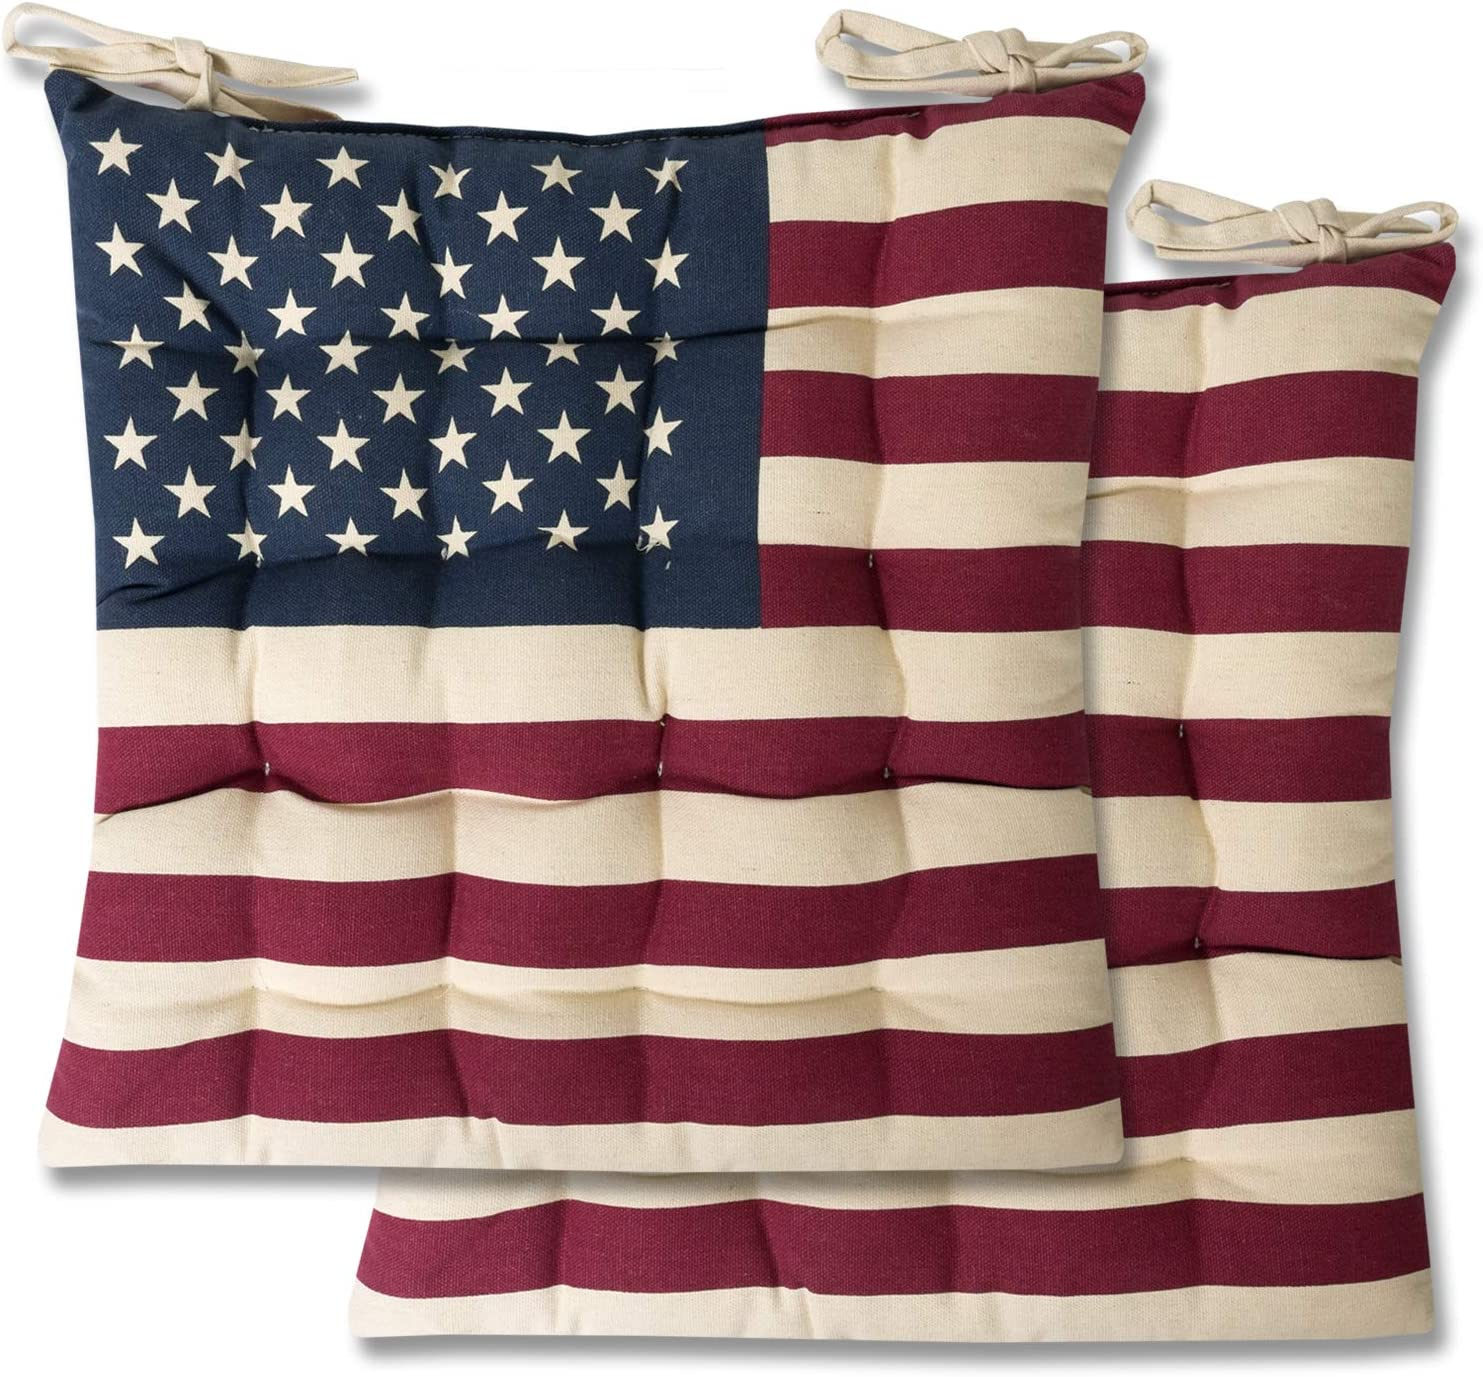 Sweet Home Collection Chair Cushion Seat Pads Indoor Outdoor Printed Tufted Design Soft And Comfortable Covers For Dining Rooms Patio With Ties For Non Slip 2 Pack American Flag 2 Count Home